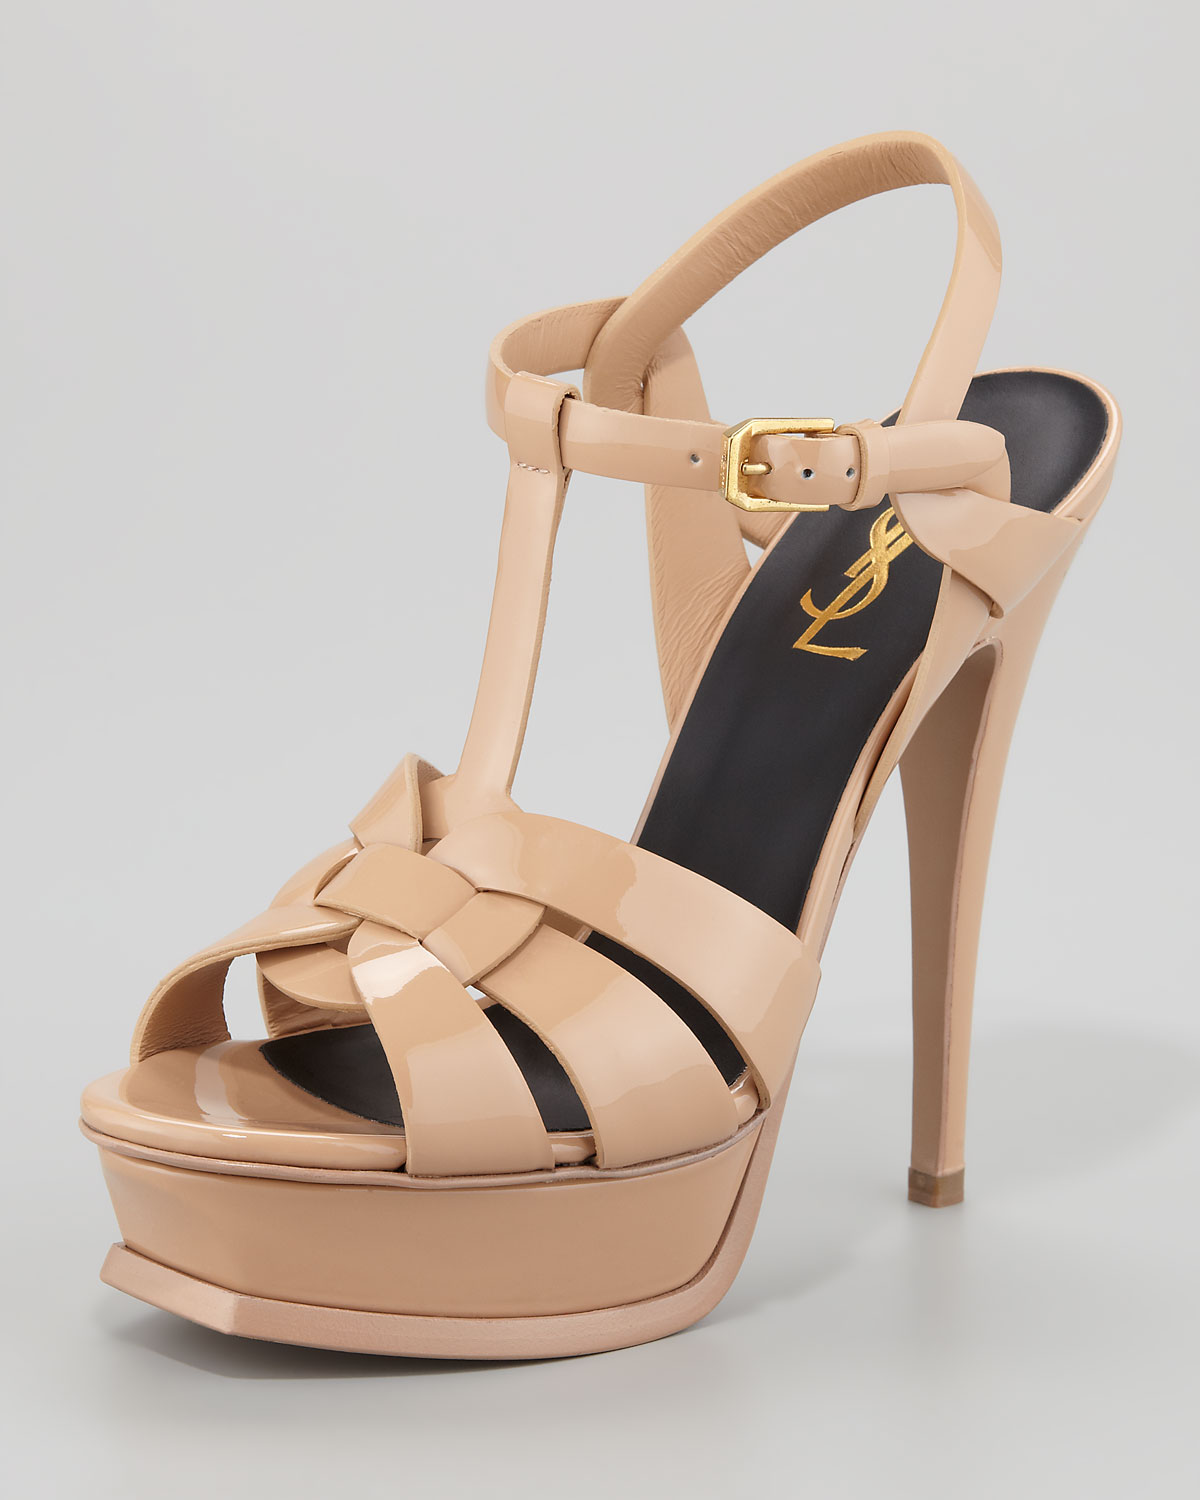 655db5749152f Gallery. Previously sold at  Neiman Marcus · Women s Saint Laurent Tribute  Women s Heeled ...